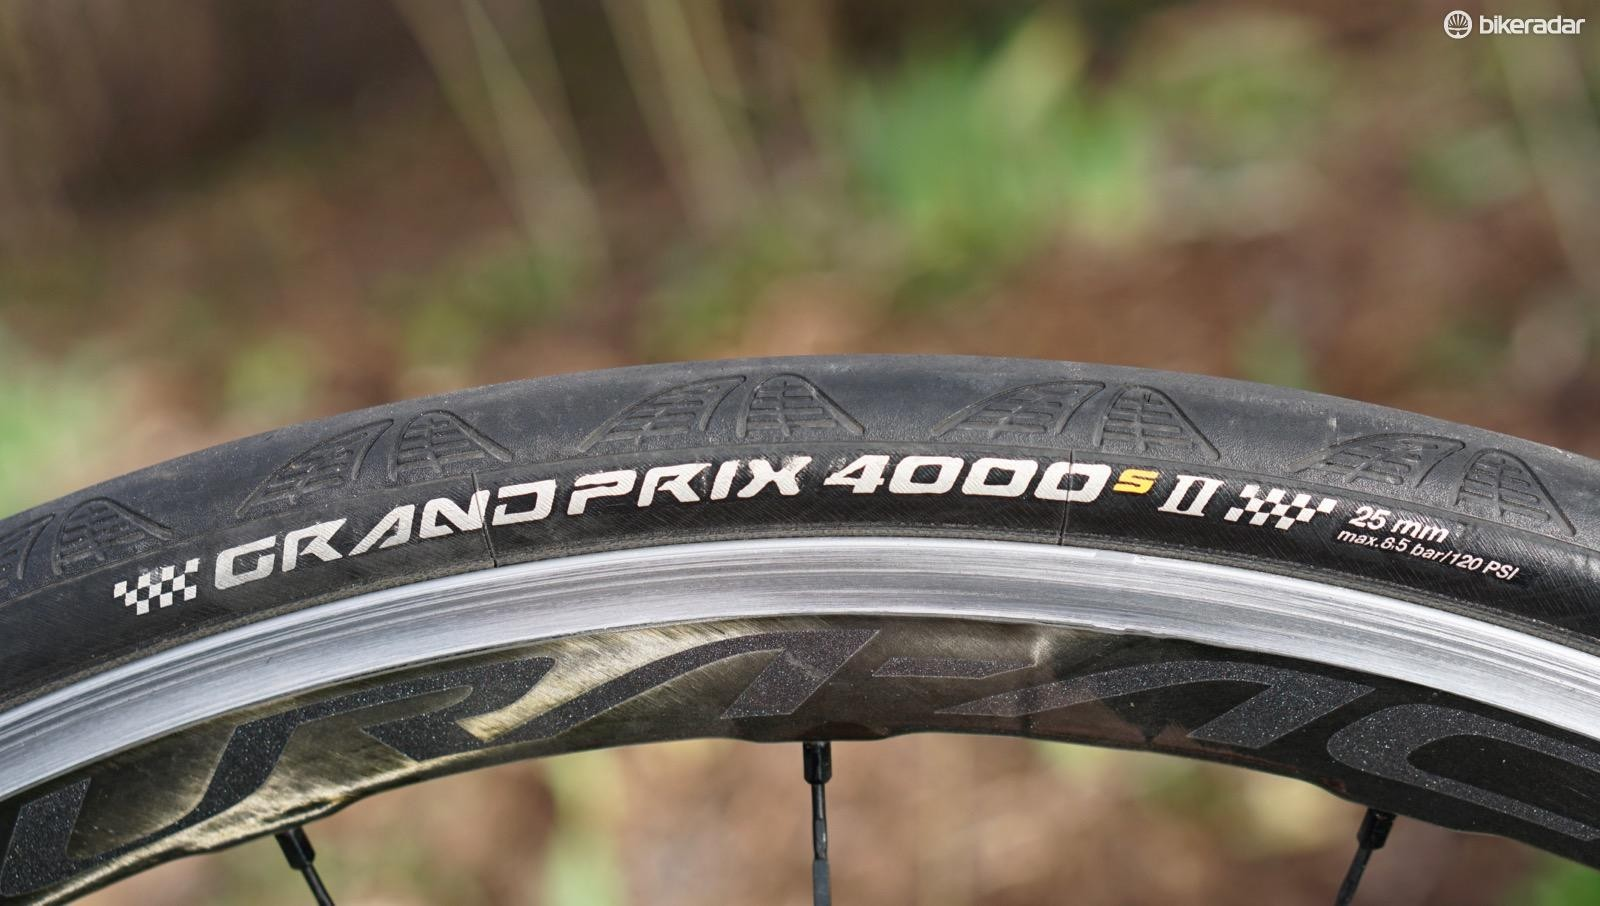 The GP4000S II was one of the best all-round road tyres ever made